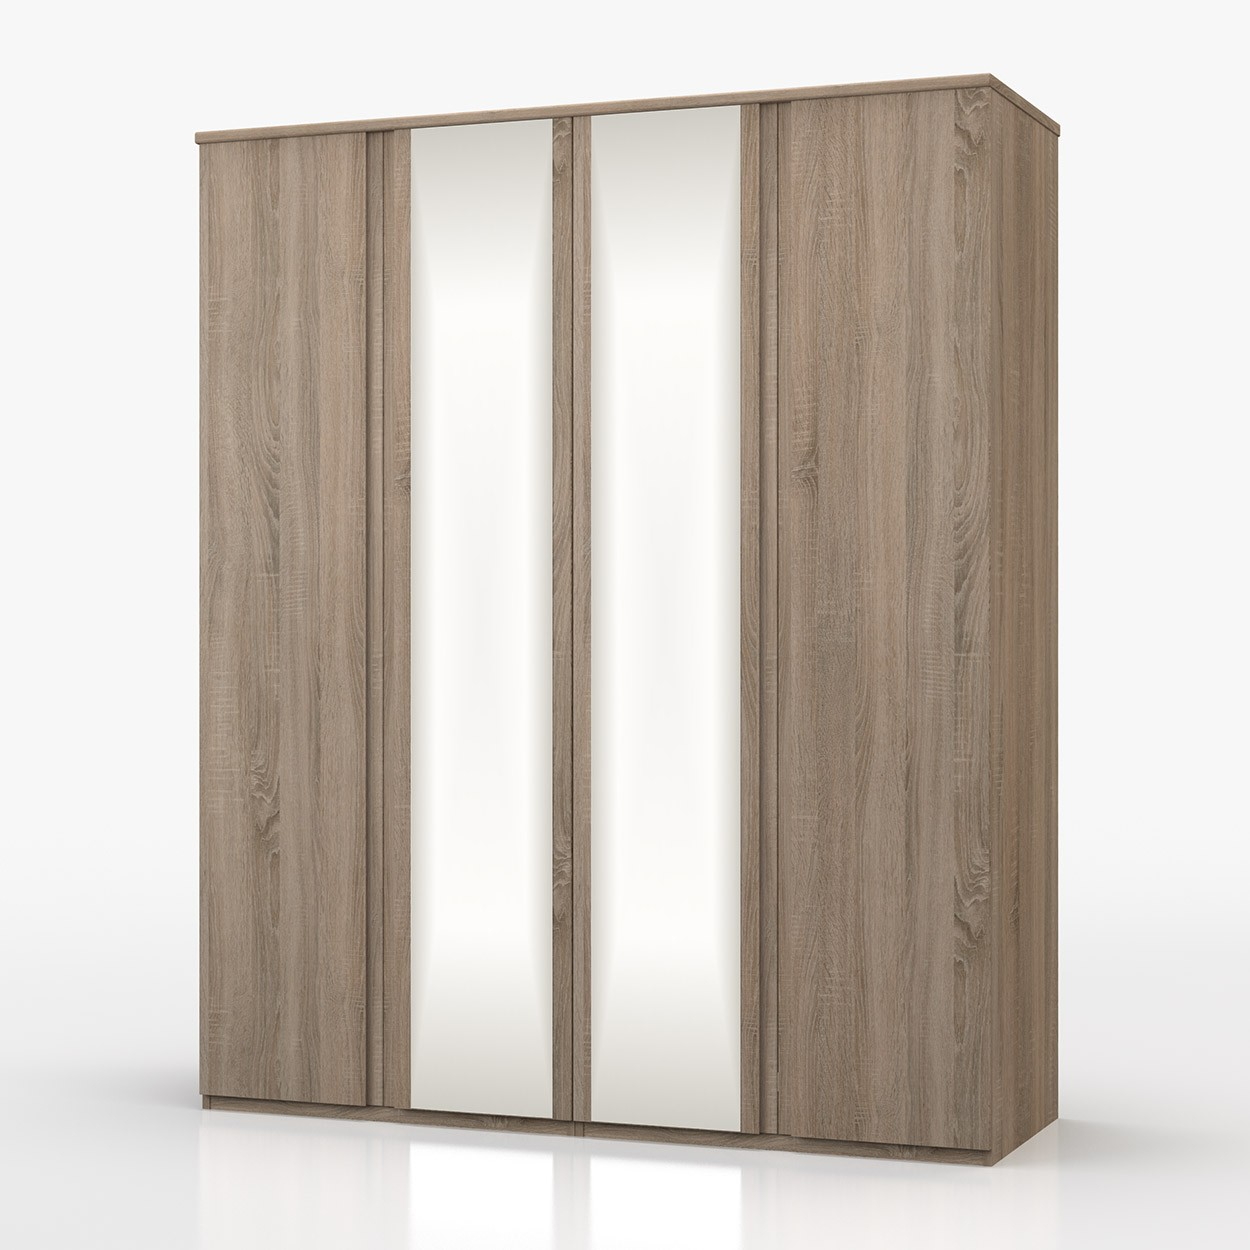 Avenue Truffle Oak 4 Door Wardrobe With Mirror